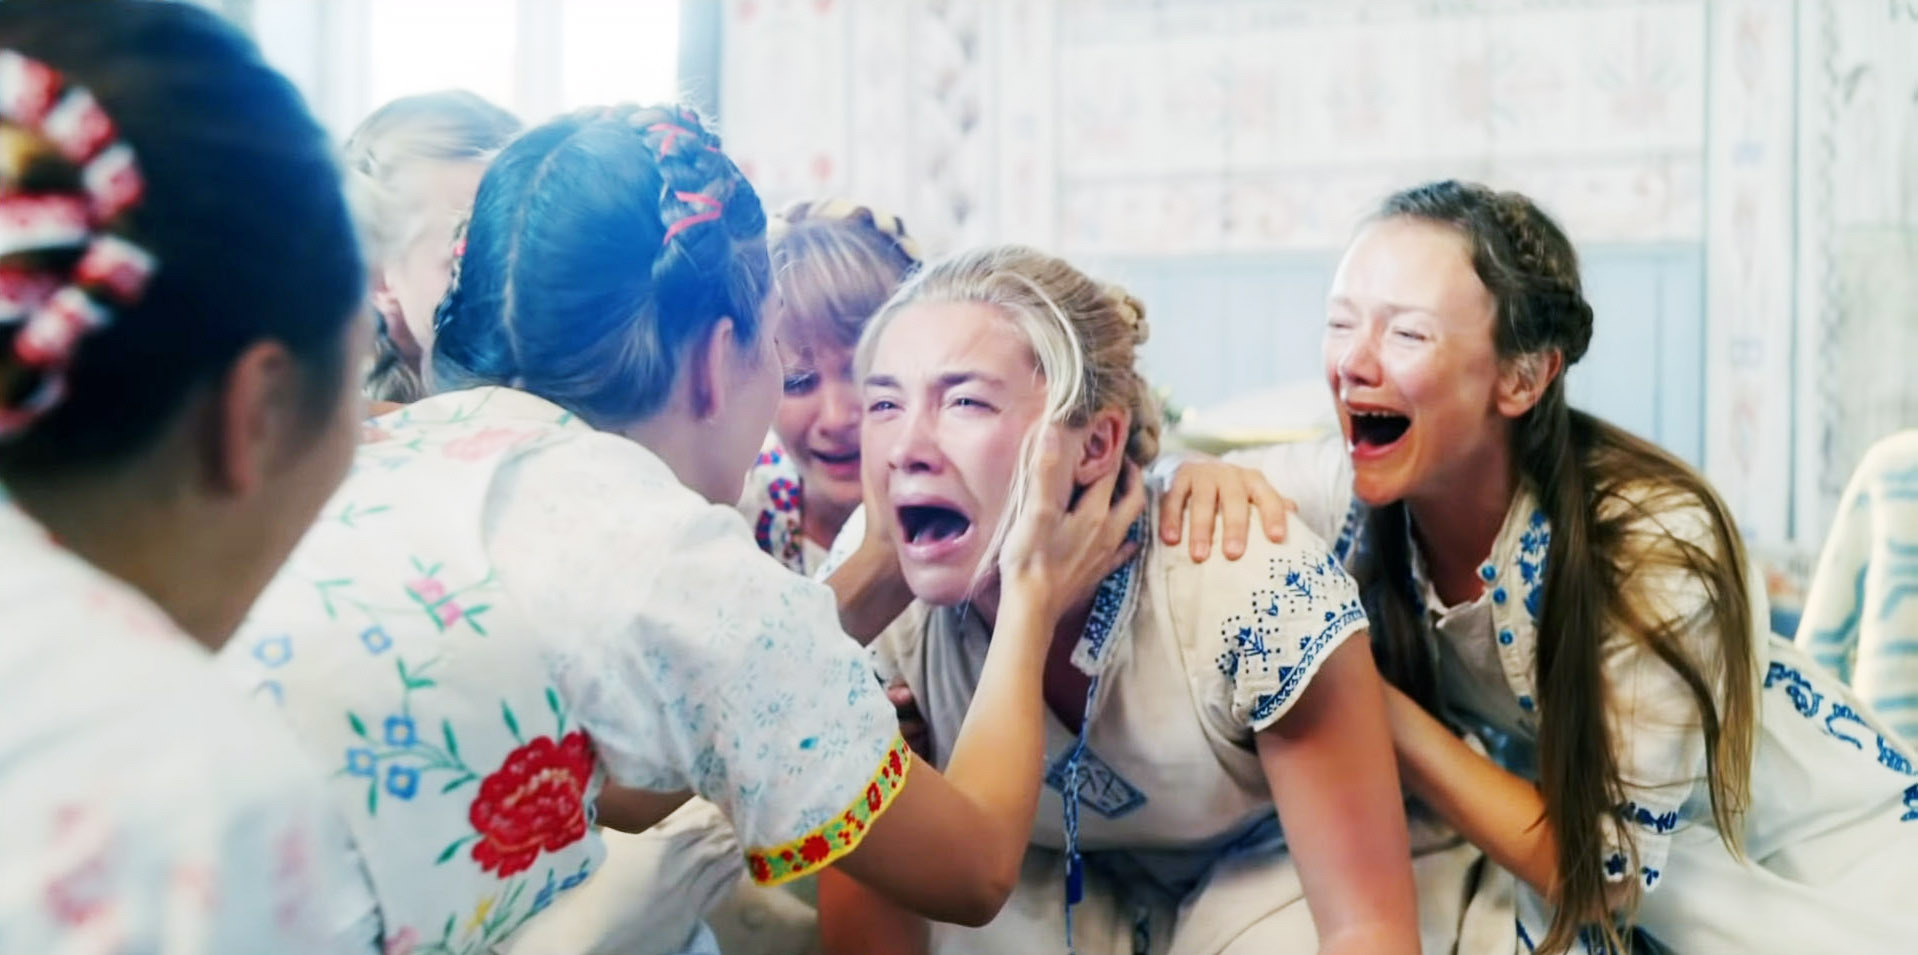 Florence Pugh crying with a bunch of women surrounding her